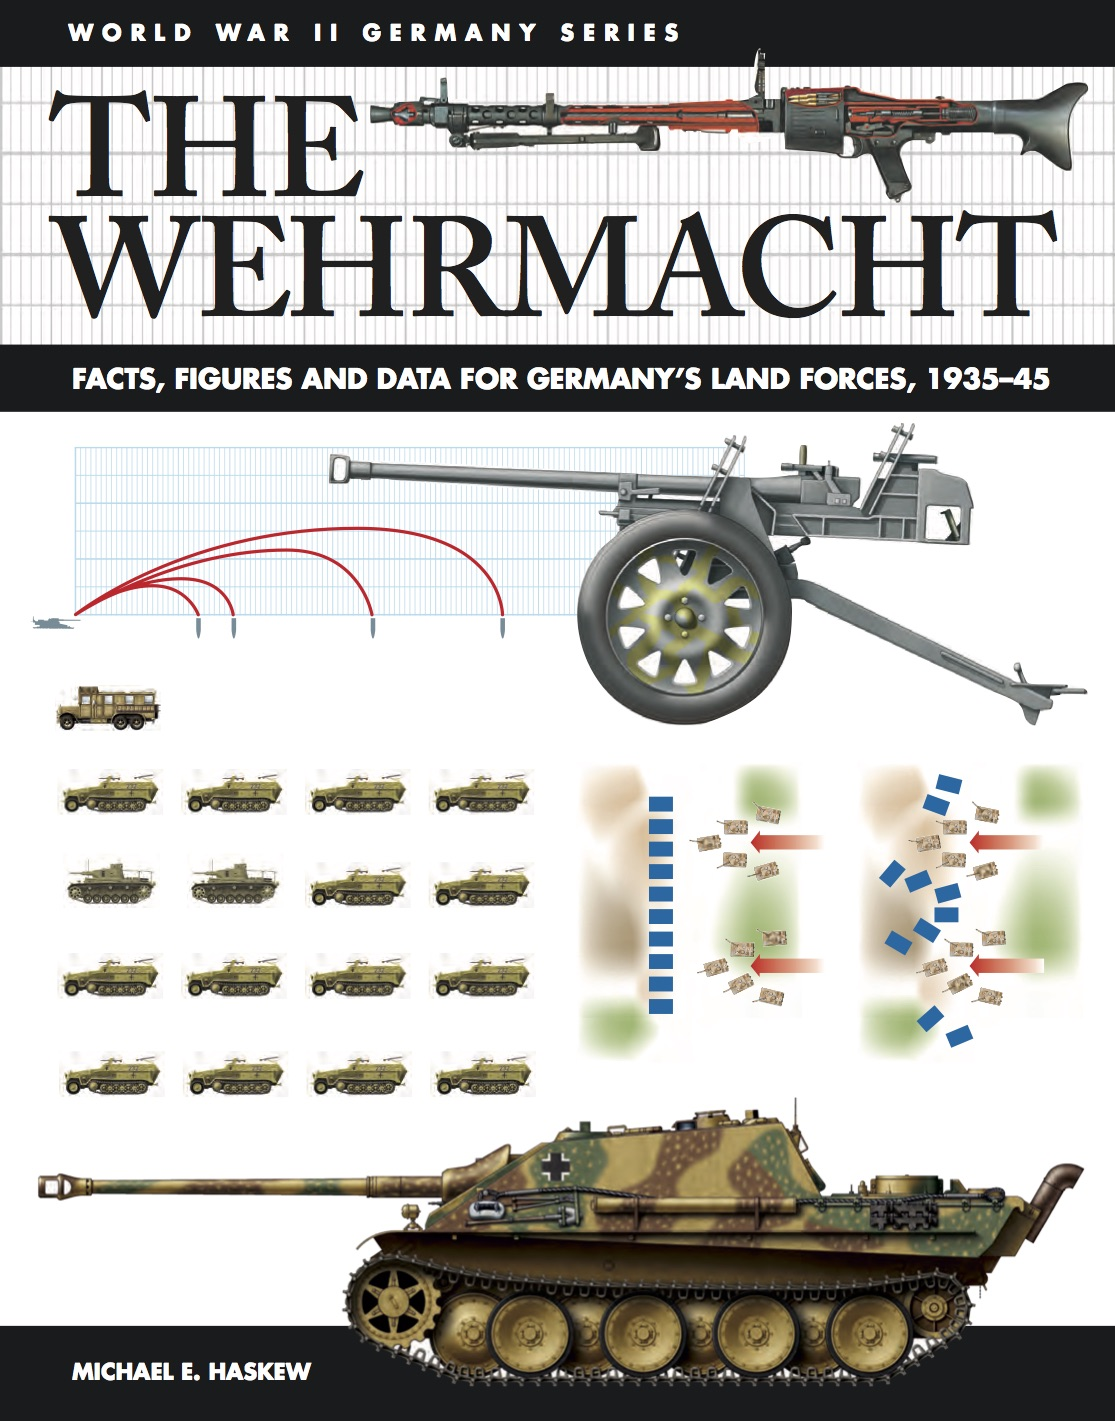 WWII Germany: The Wehrmacht